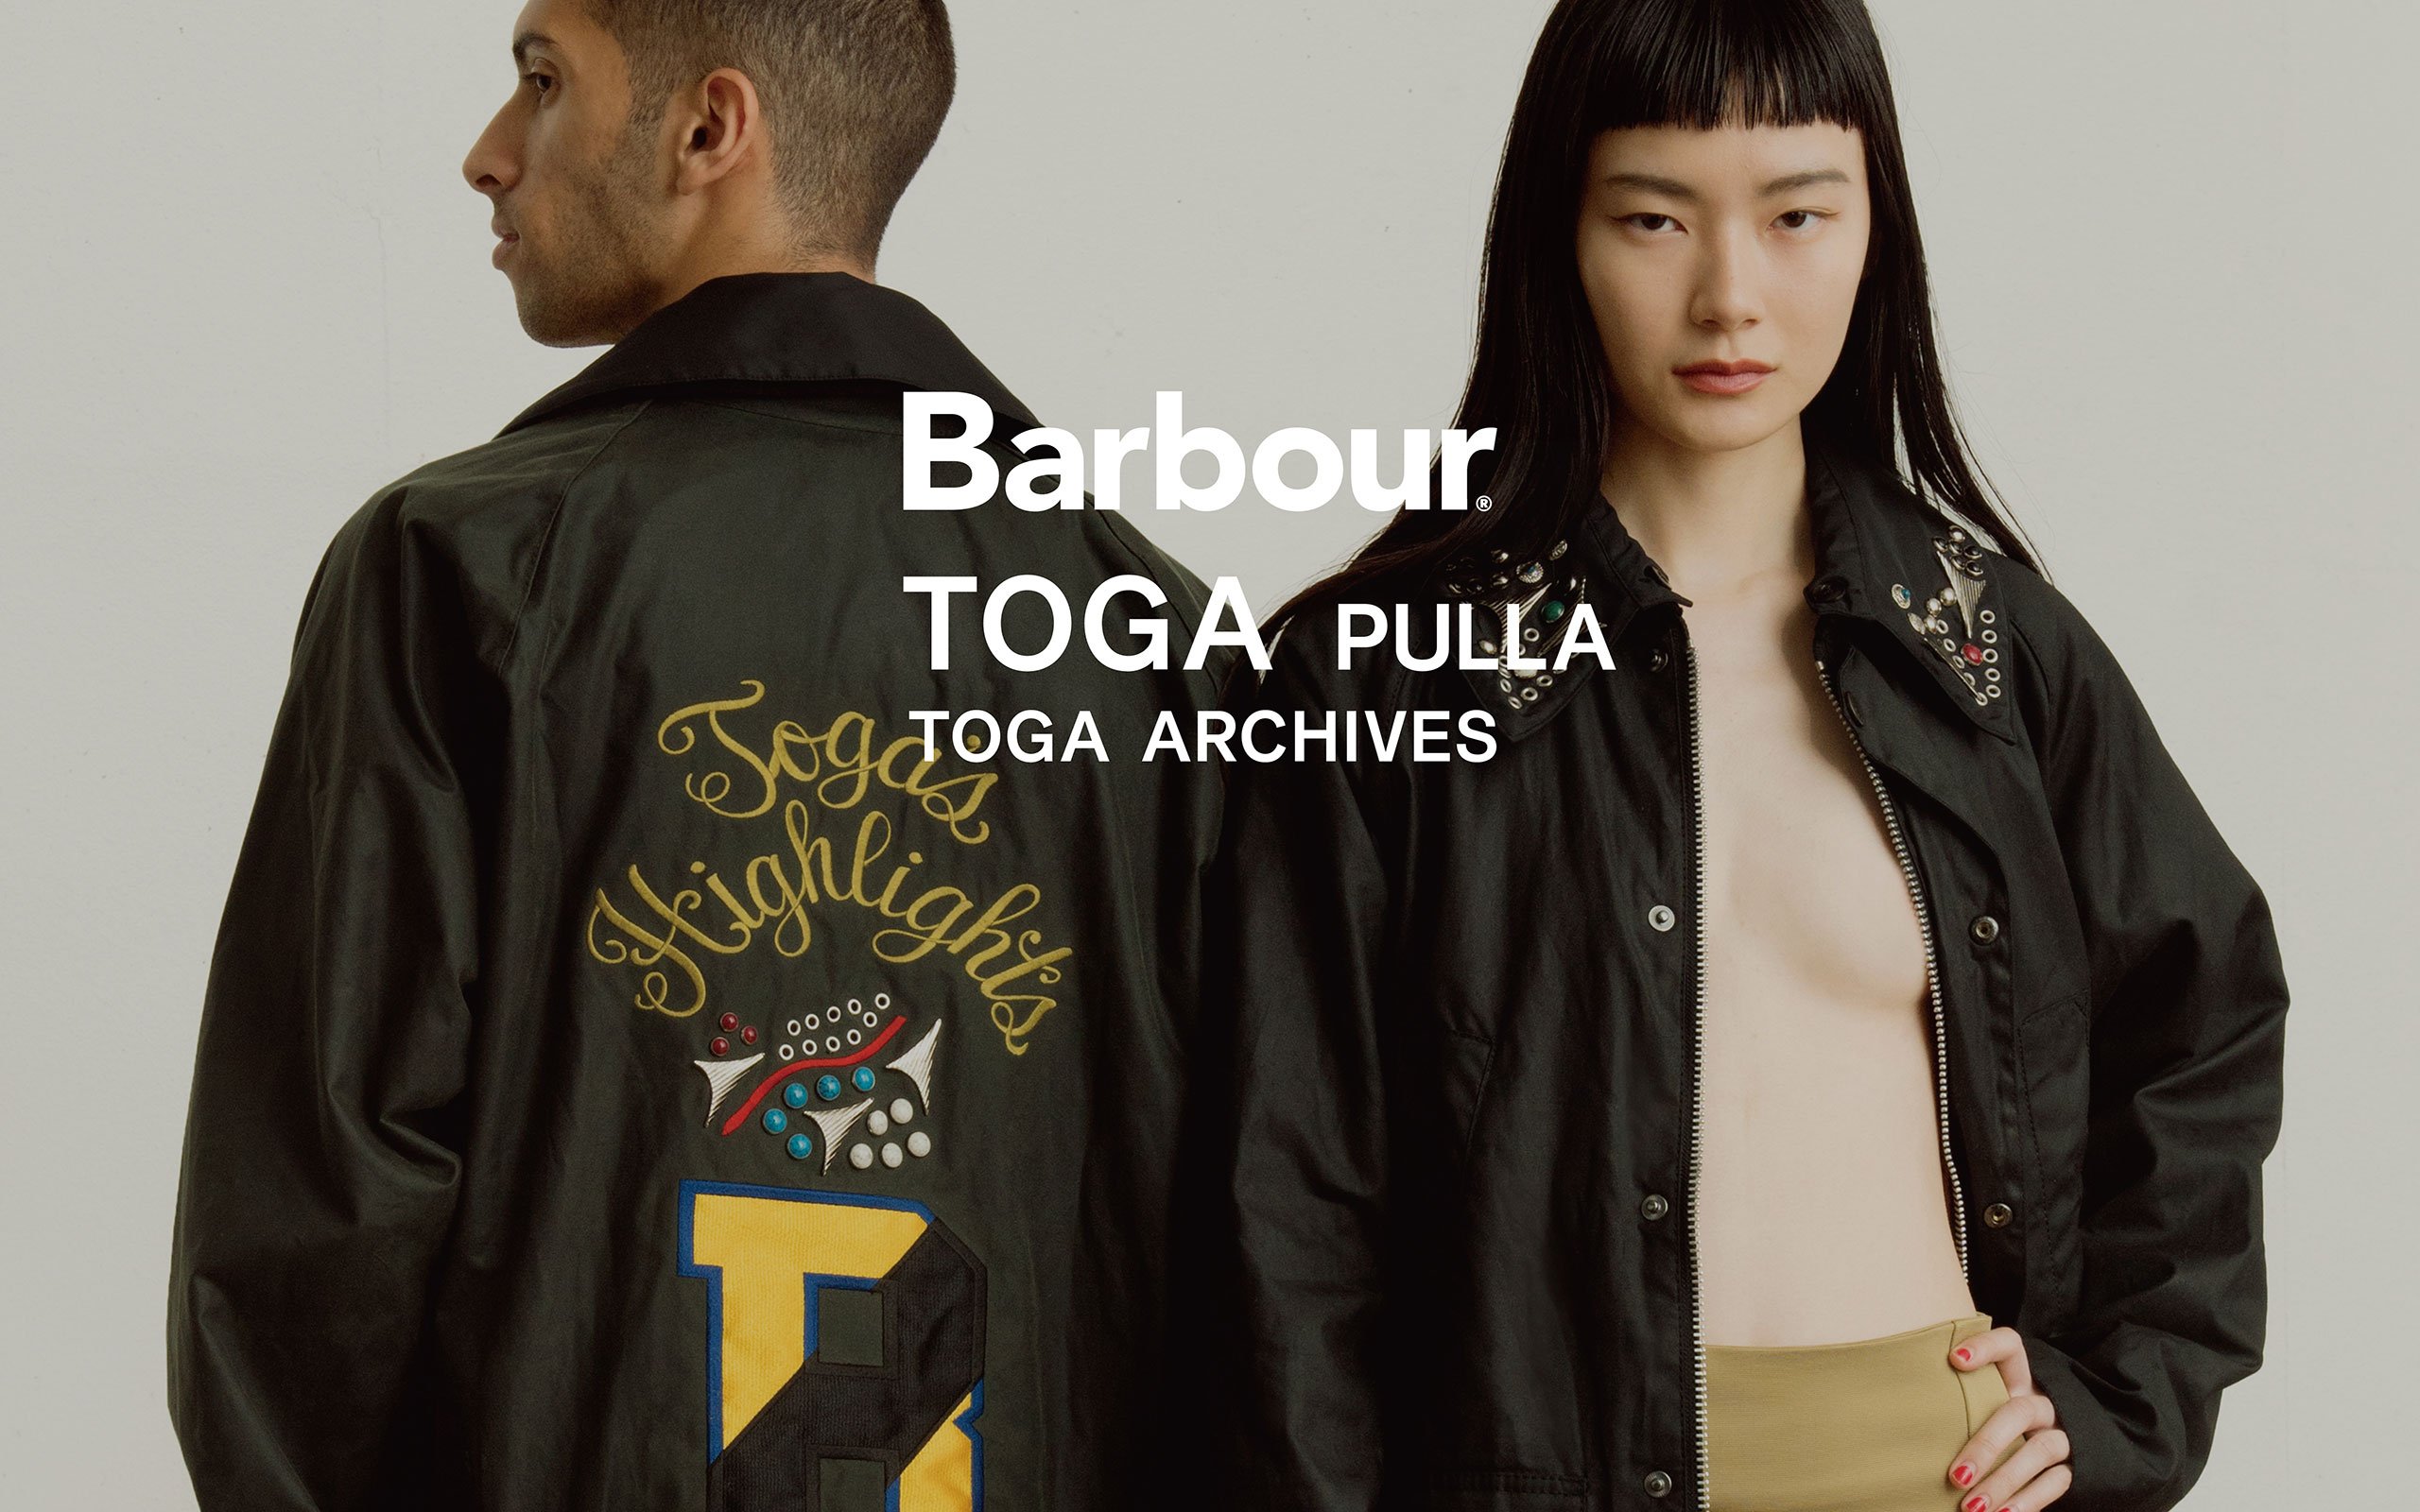 TOGA PULLA Collaborates With Barbour Again